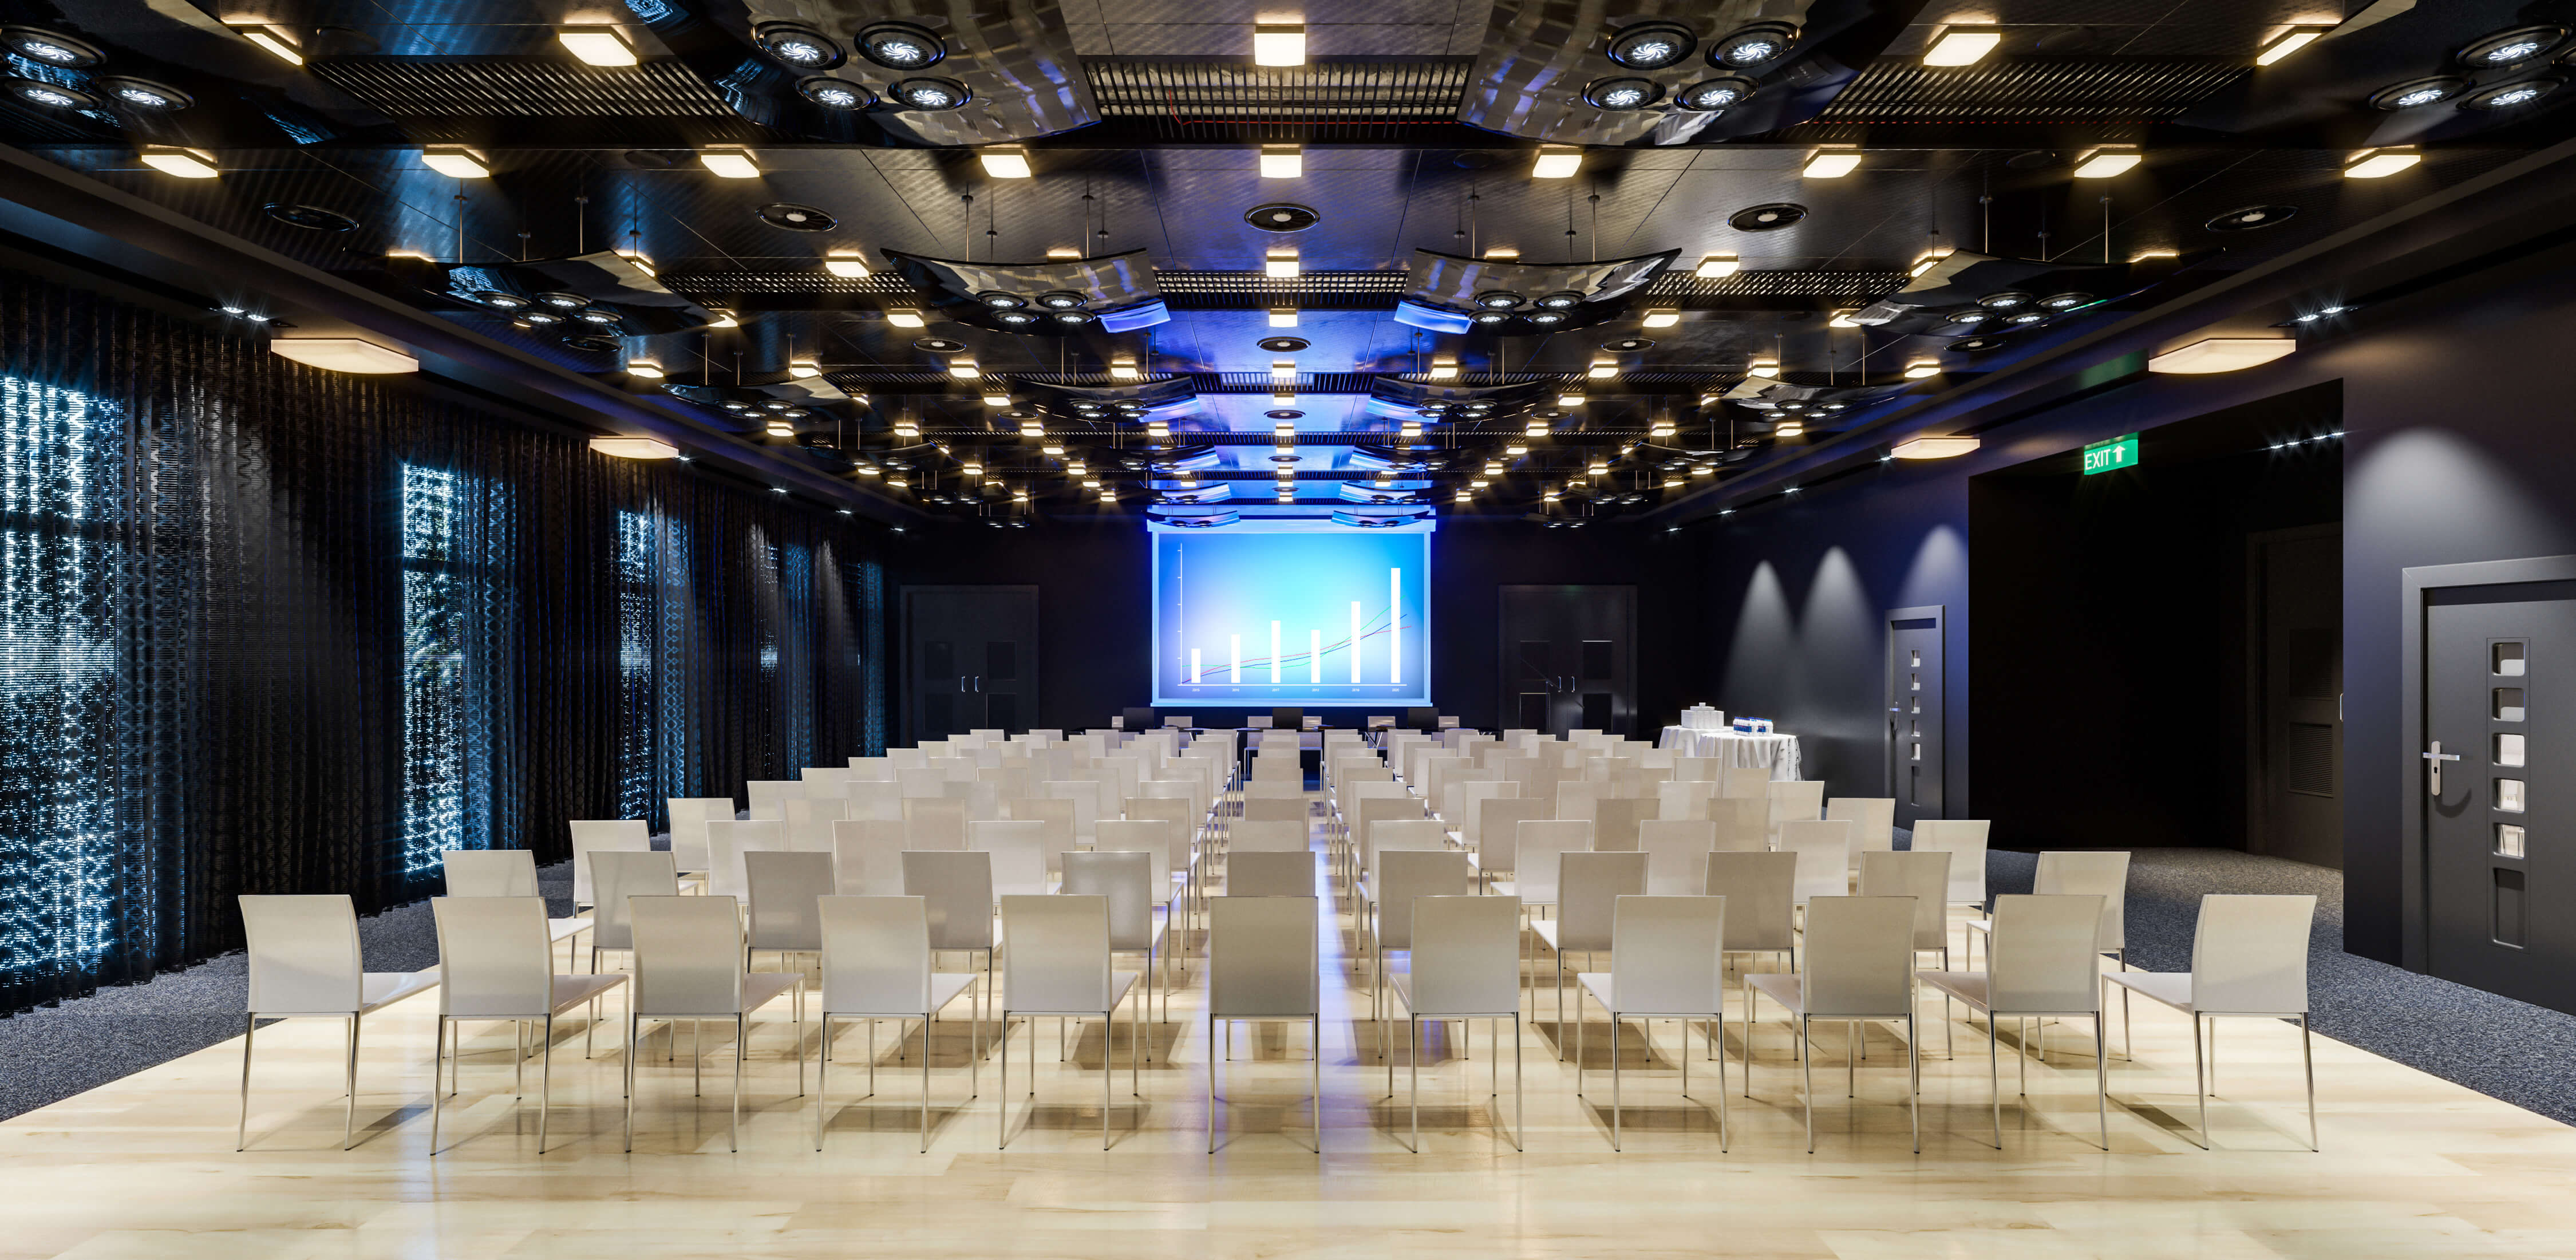 10 Tips to Help You Plan a Top Notch Live Business Event